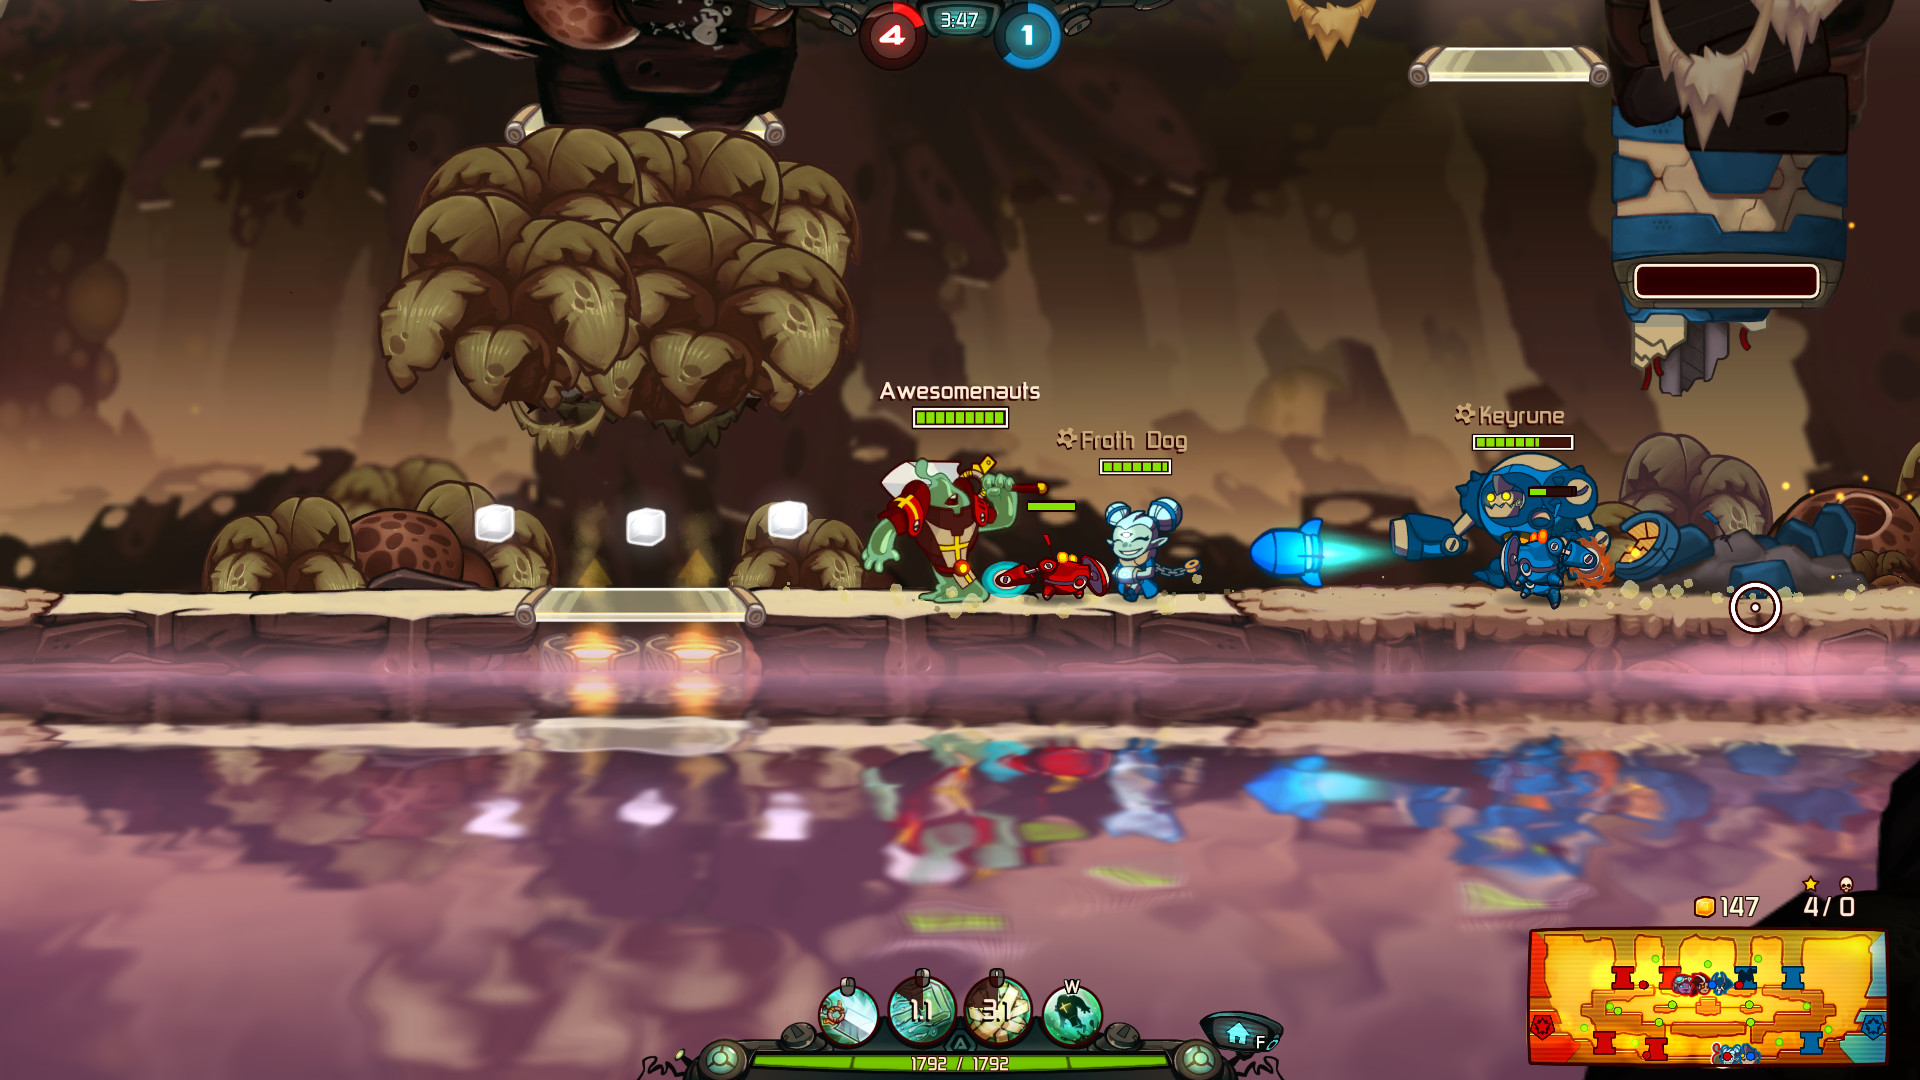 Awesomenauts - the 2D moba screenshot